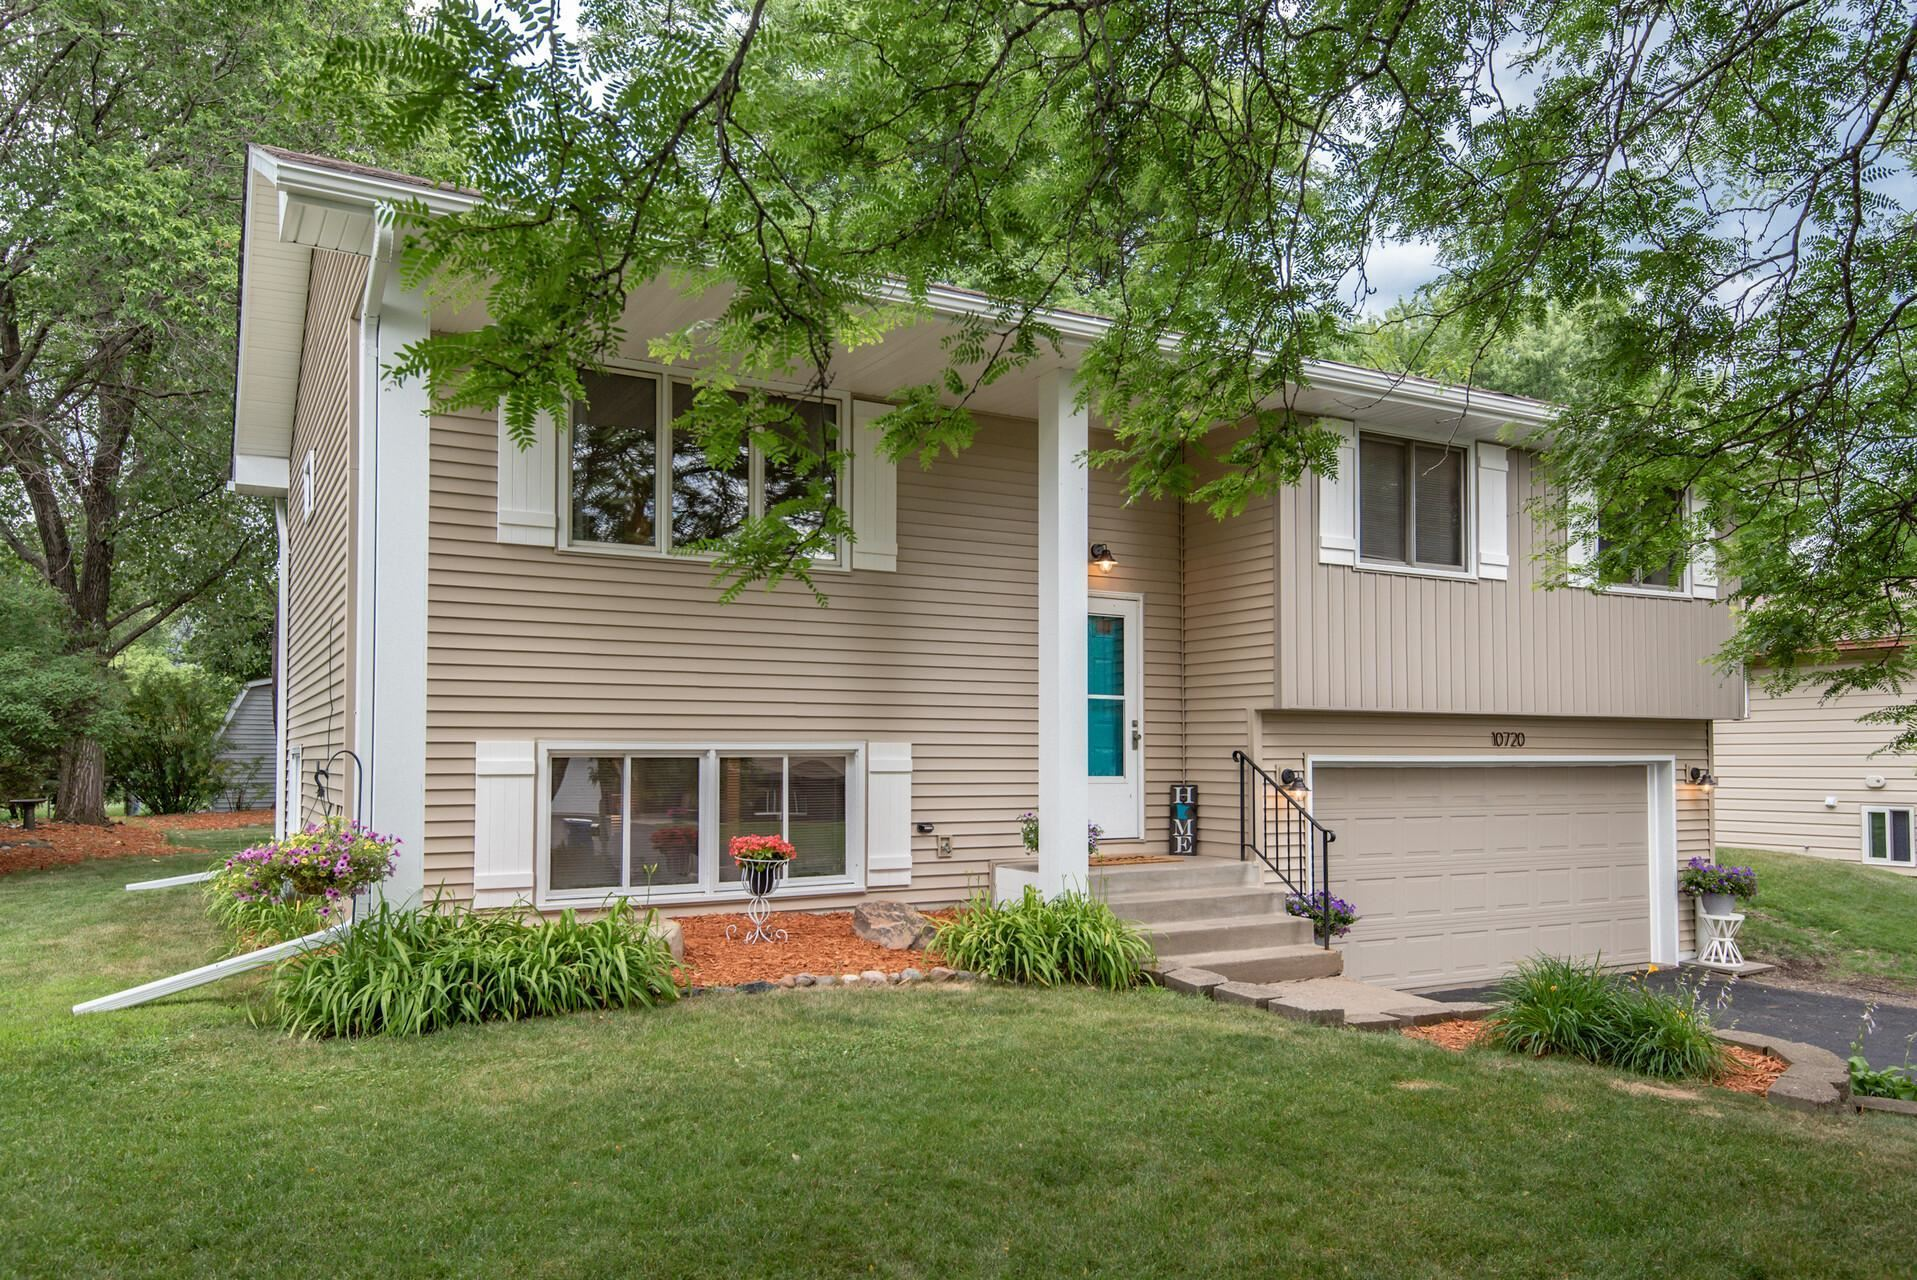 10720 95th Place N, Maple Grove, MN 55369 - MLS#: 5619645